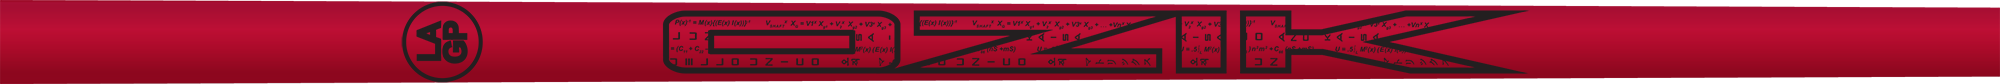 Ozik White Tie: Red Black Satin - Wood 50 A